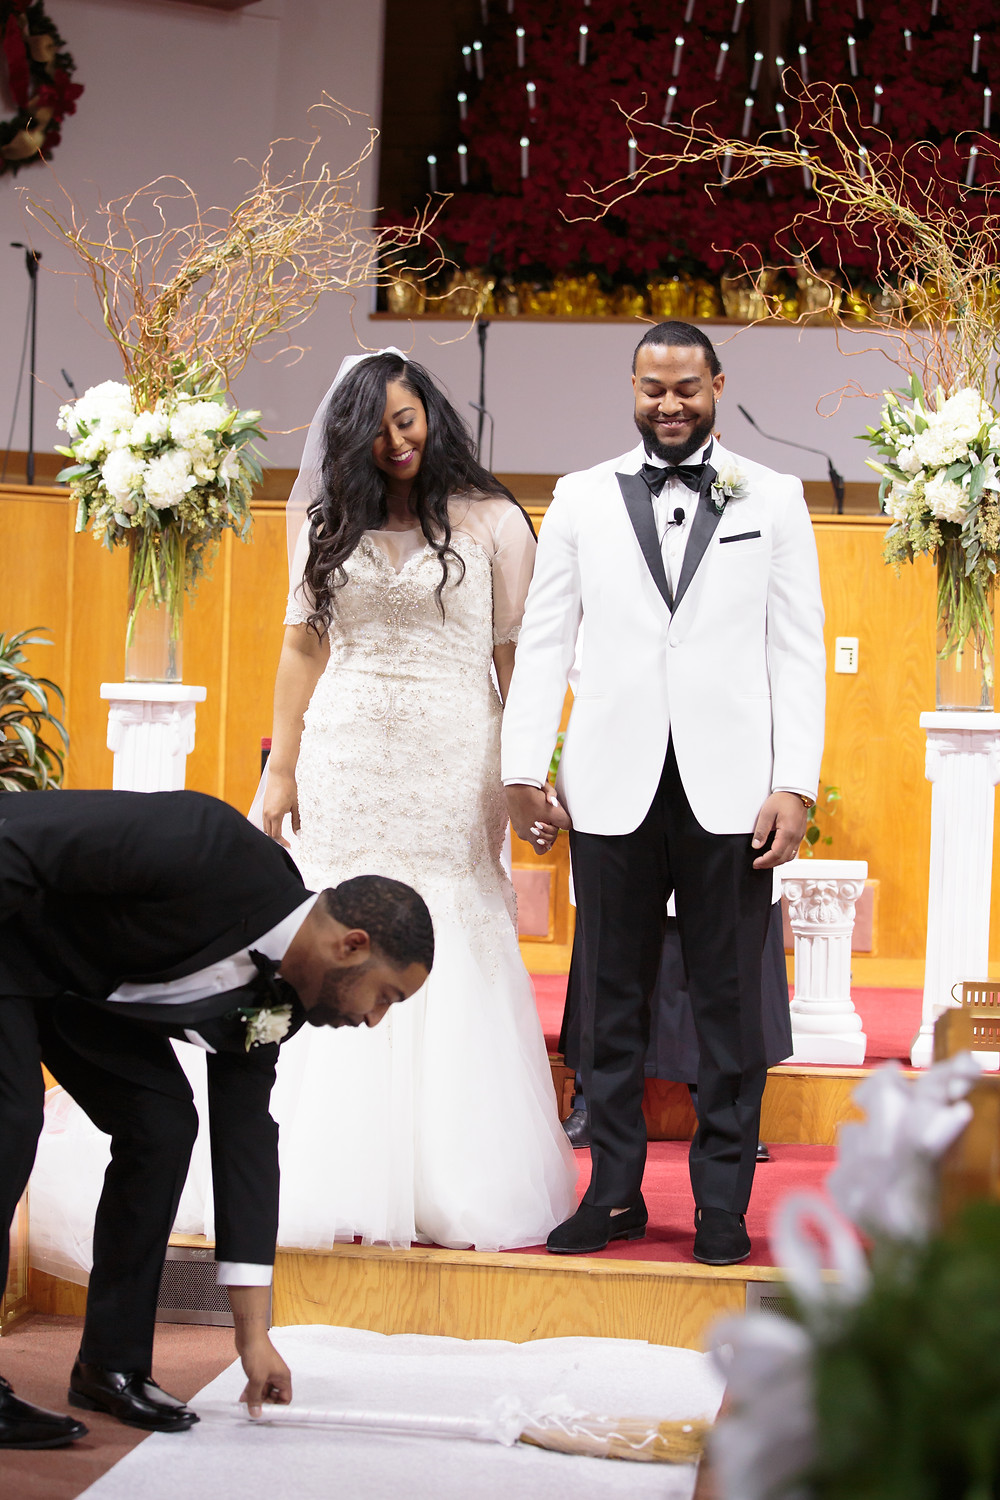 The bride and groom are presented as Mr. and Mrs. for the very first time during the wedding ceremony at the Alfred Street Baptist Church in Alexandria Virginia.